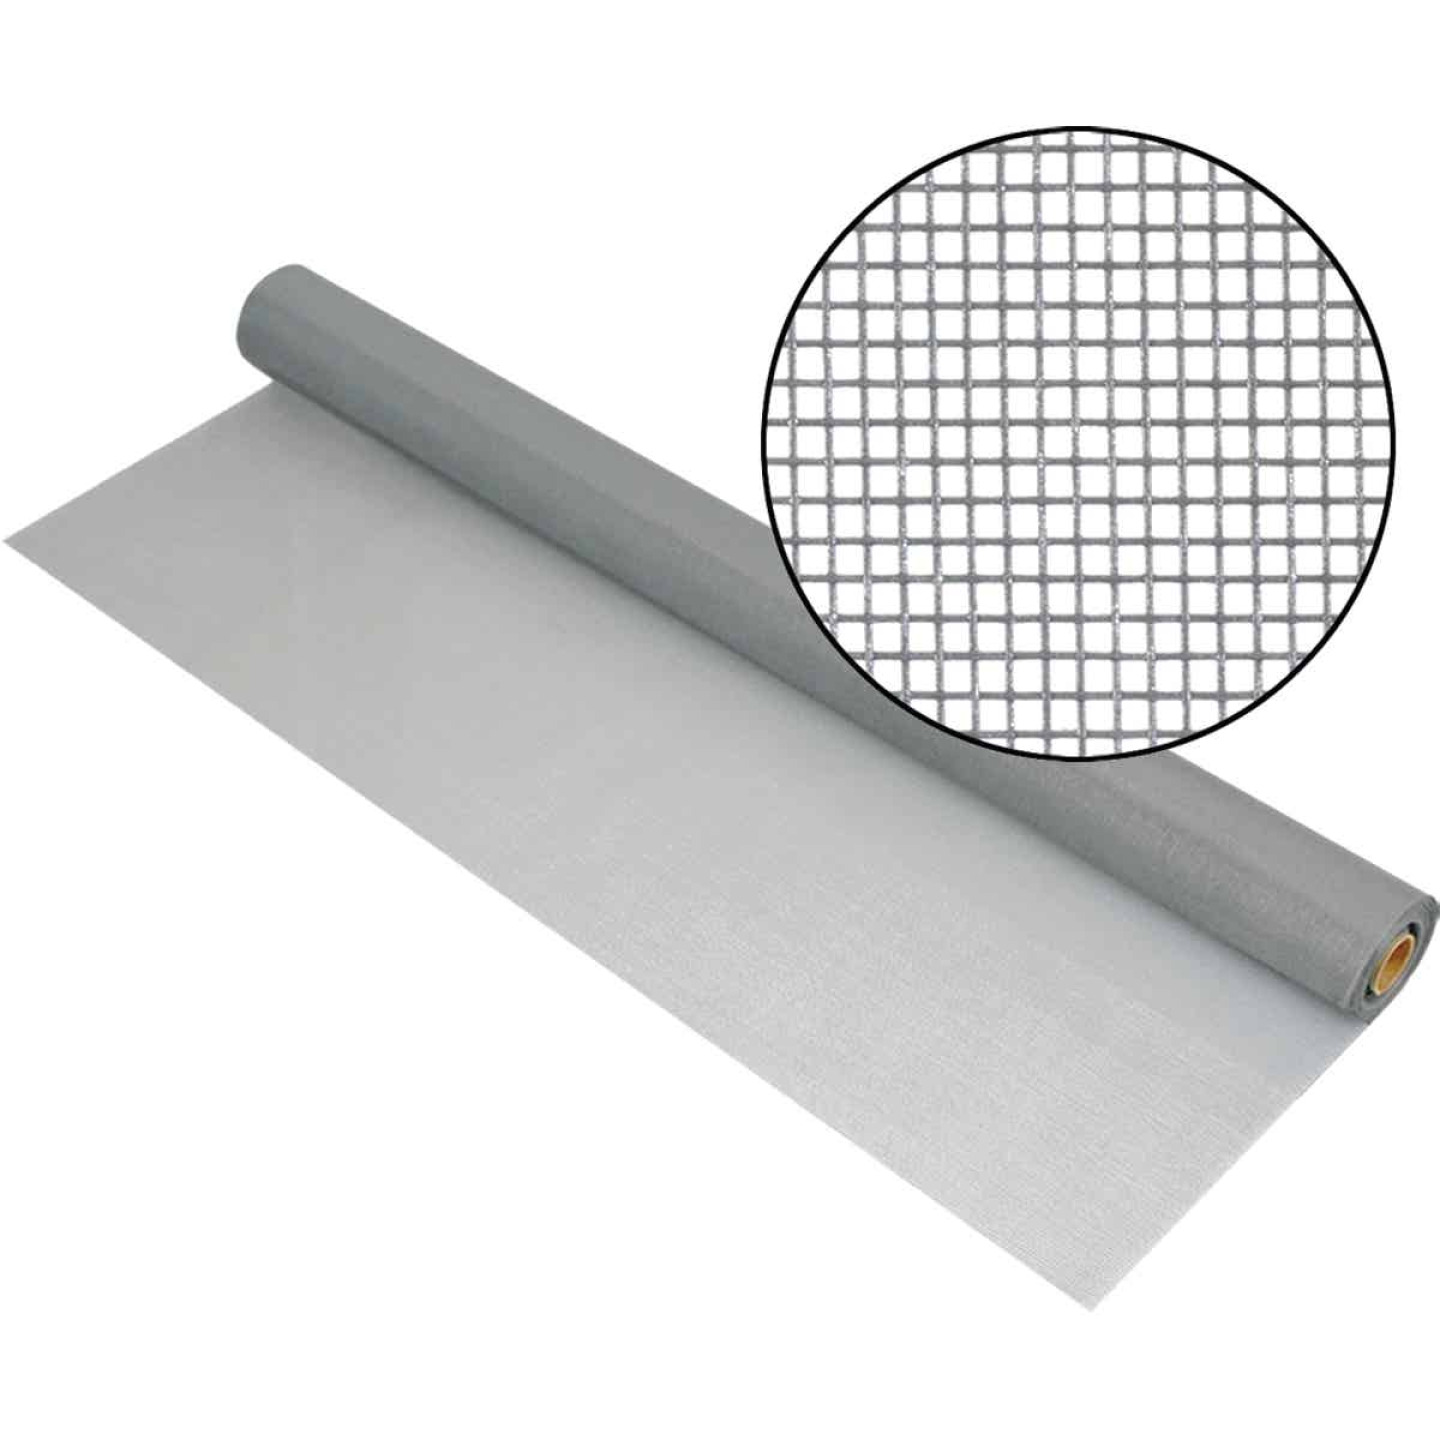 Phifer 48 In. x 100 Ft. Gray Fiberglass Mesh Screen Cloth Image 1